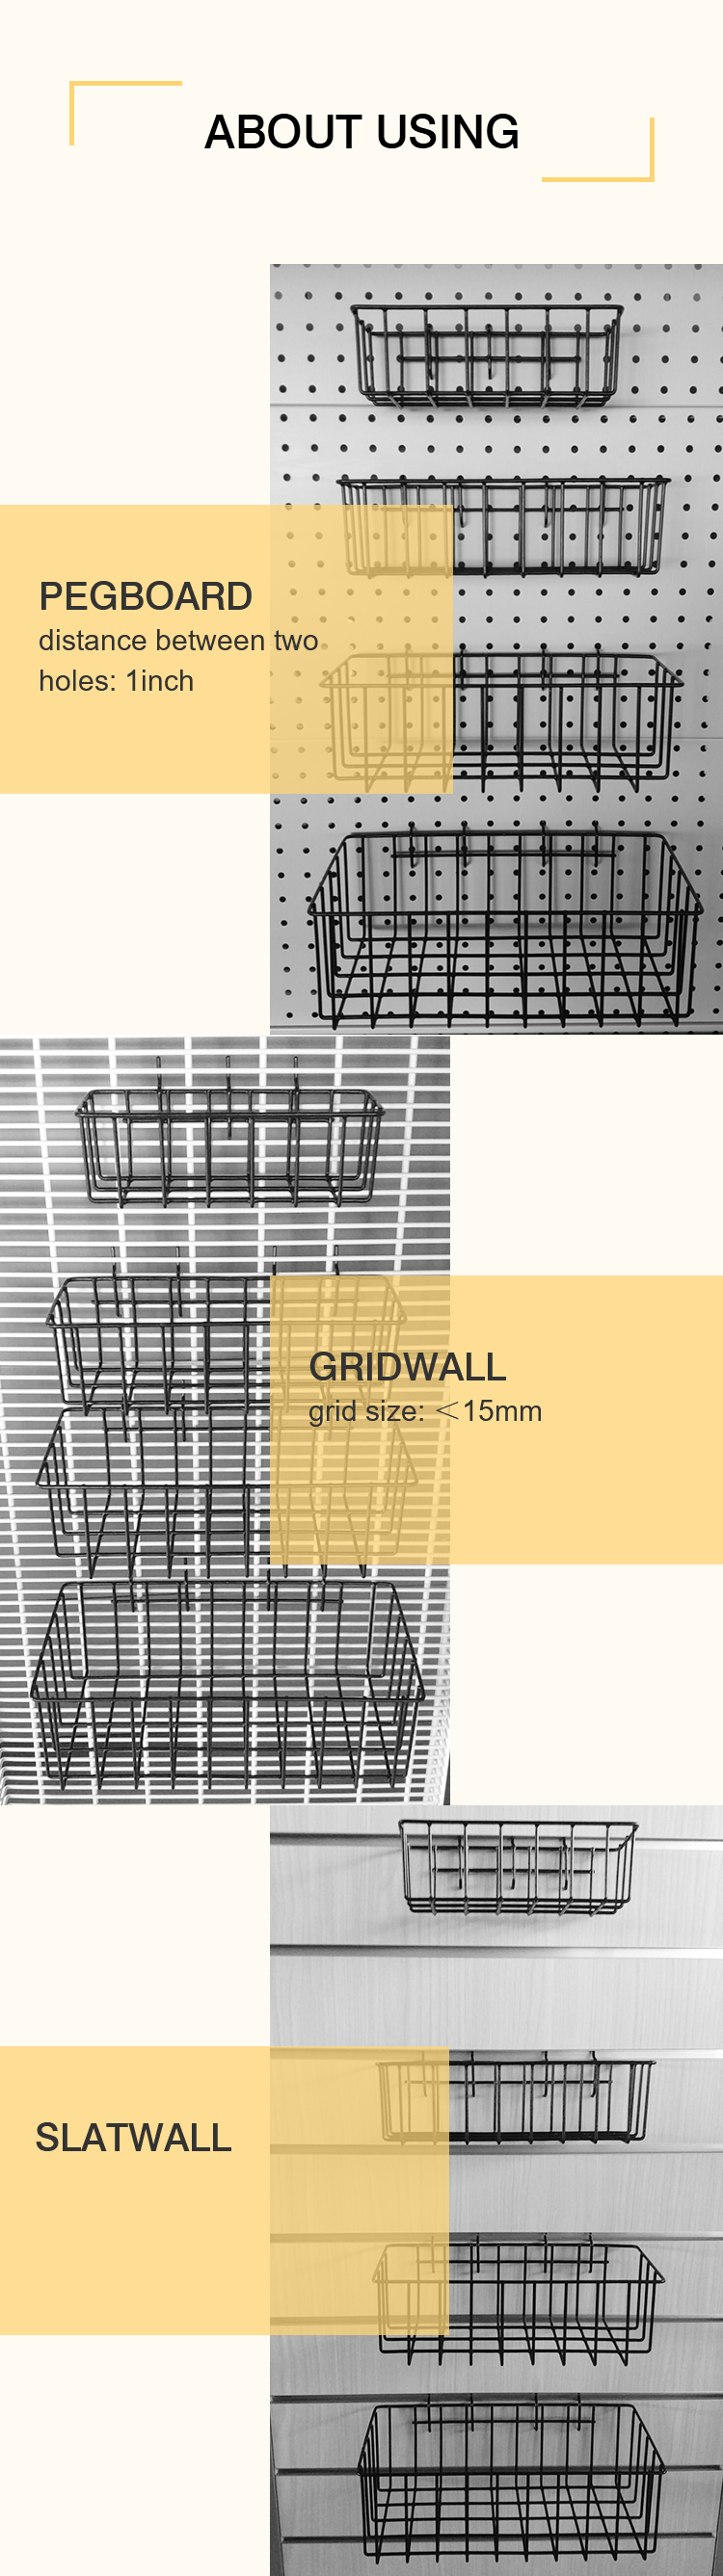 Wire Baskets for Gridwall/Slatwall/Pegboard